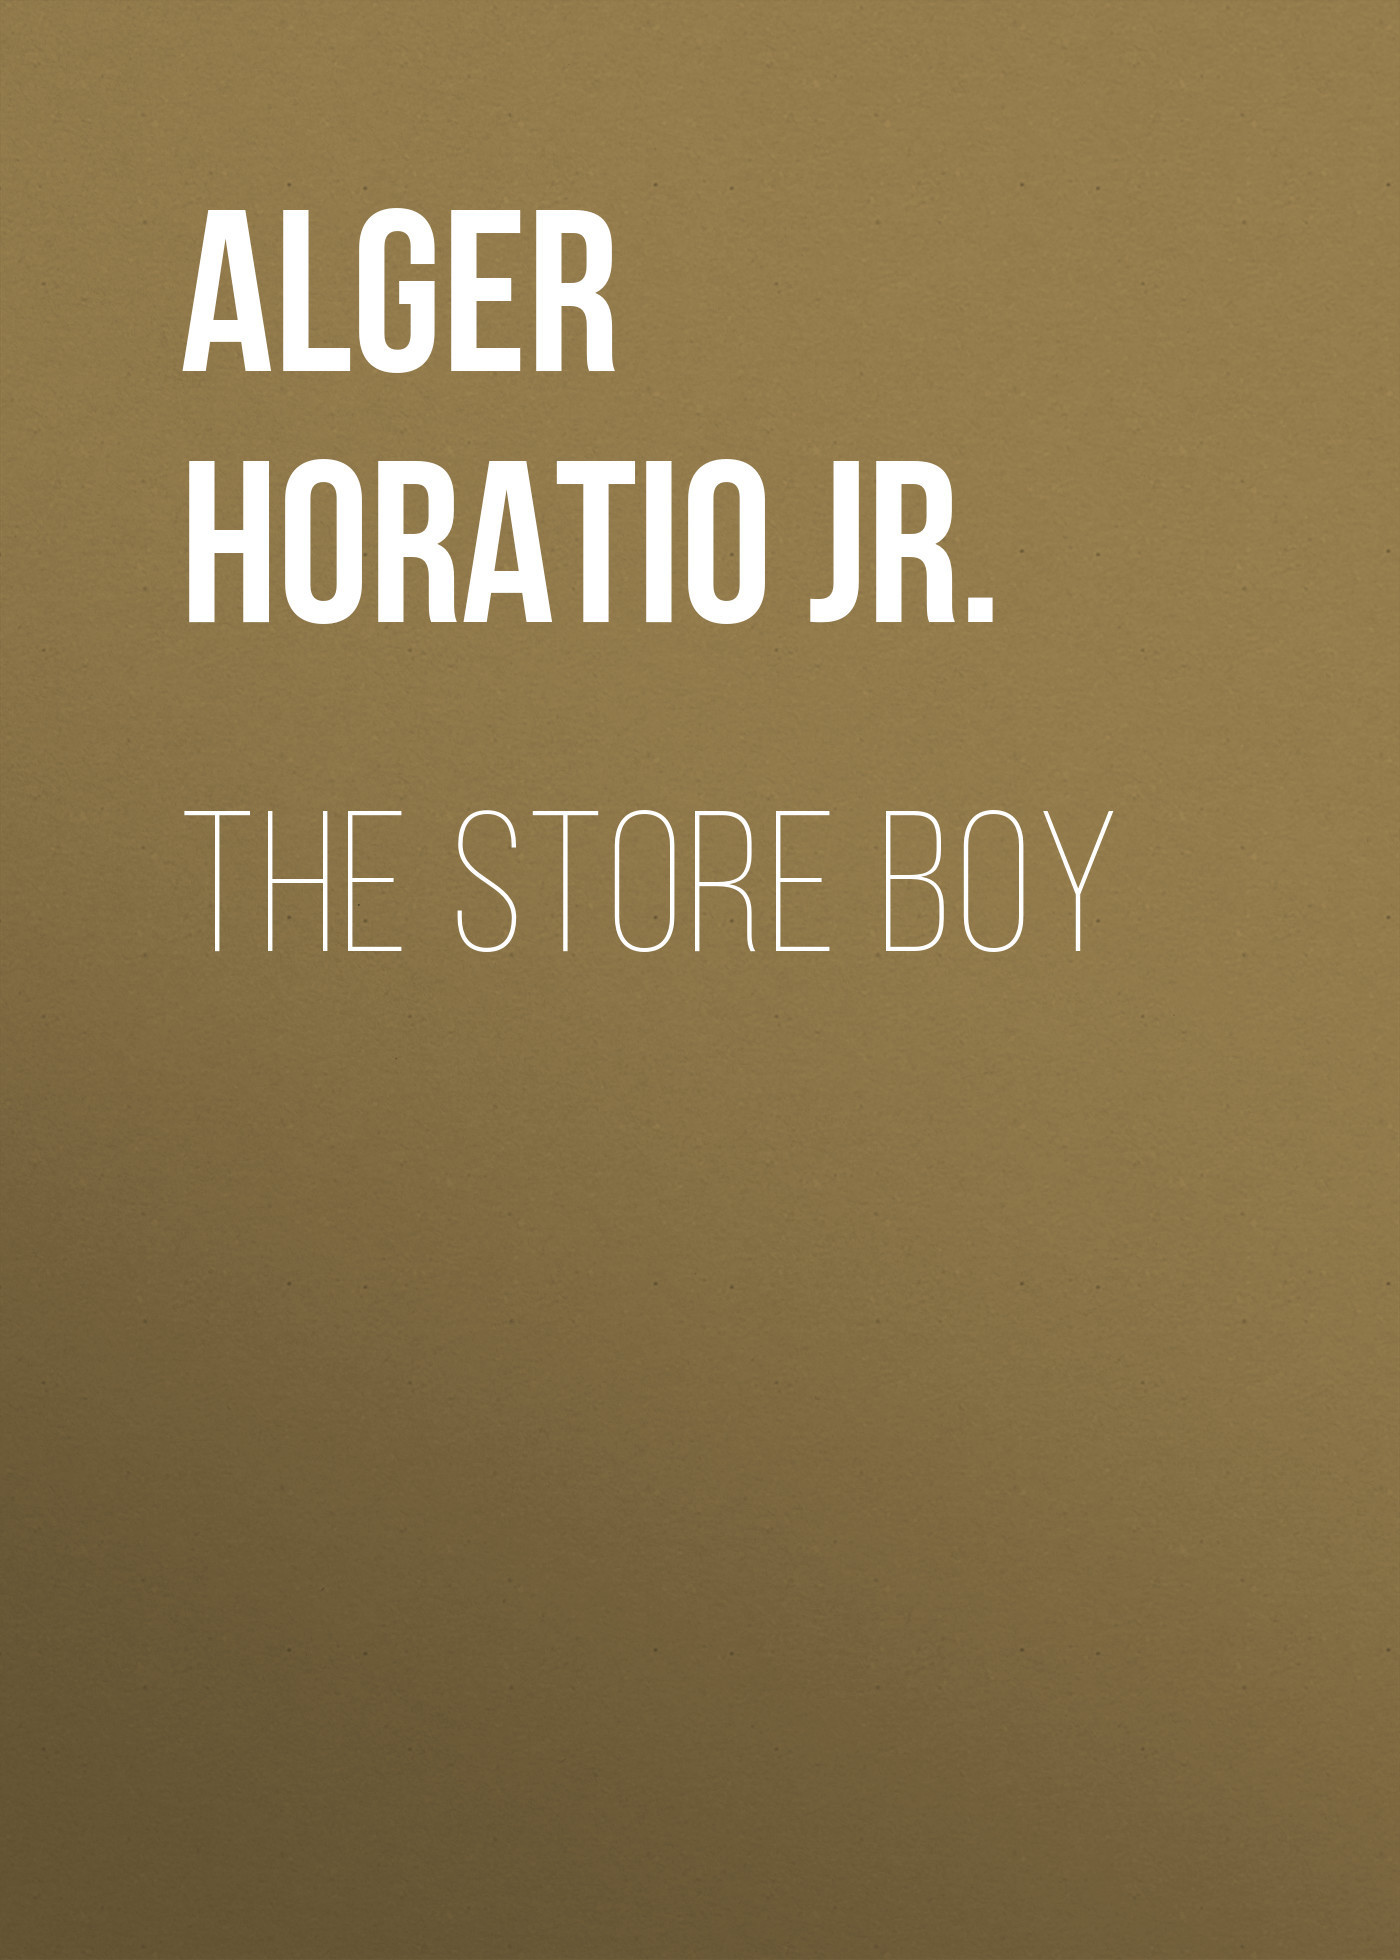 Alger Horatio Jr. The Store Boy horatio alger jr bernard brooks adventures the experience of a plucky boy